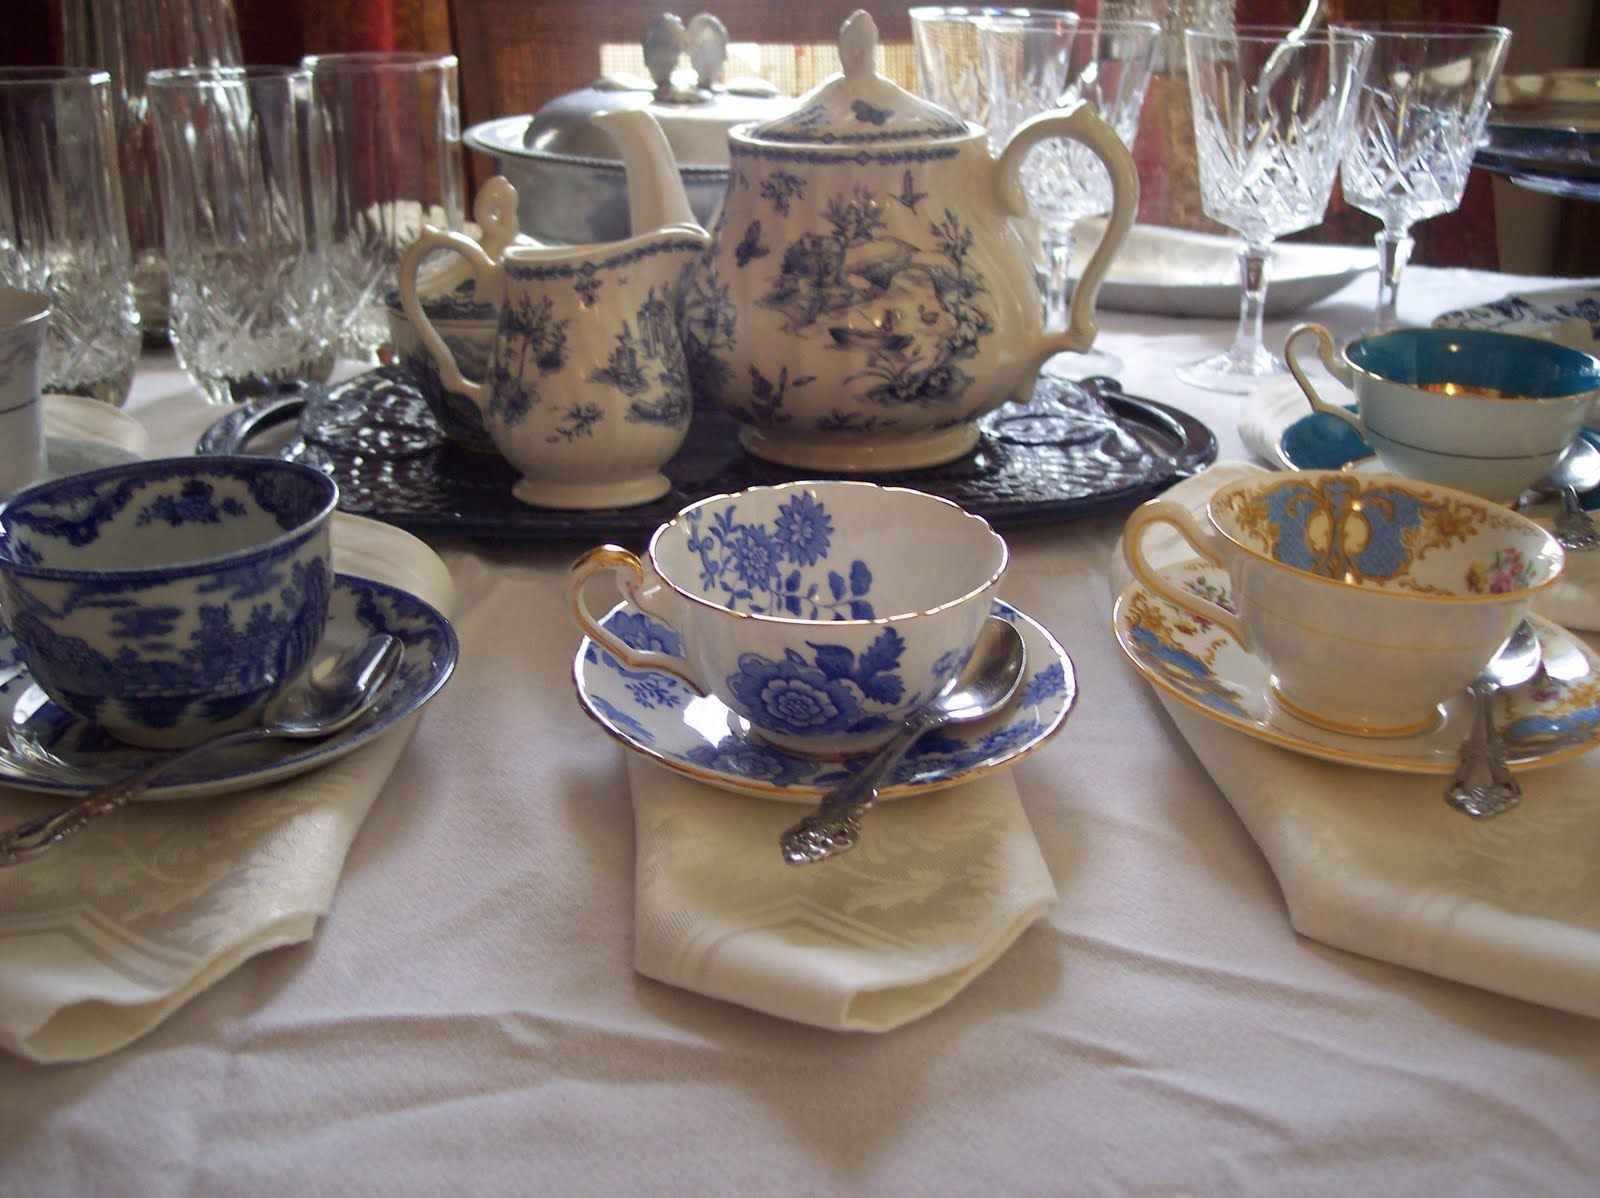 Victorian tea party - where can I find a blue and white teapot like this one here??